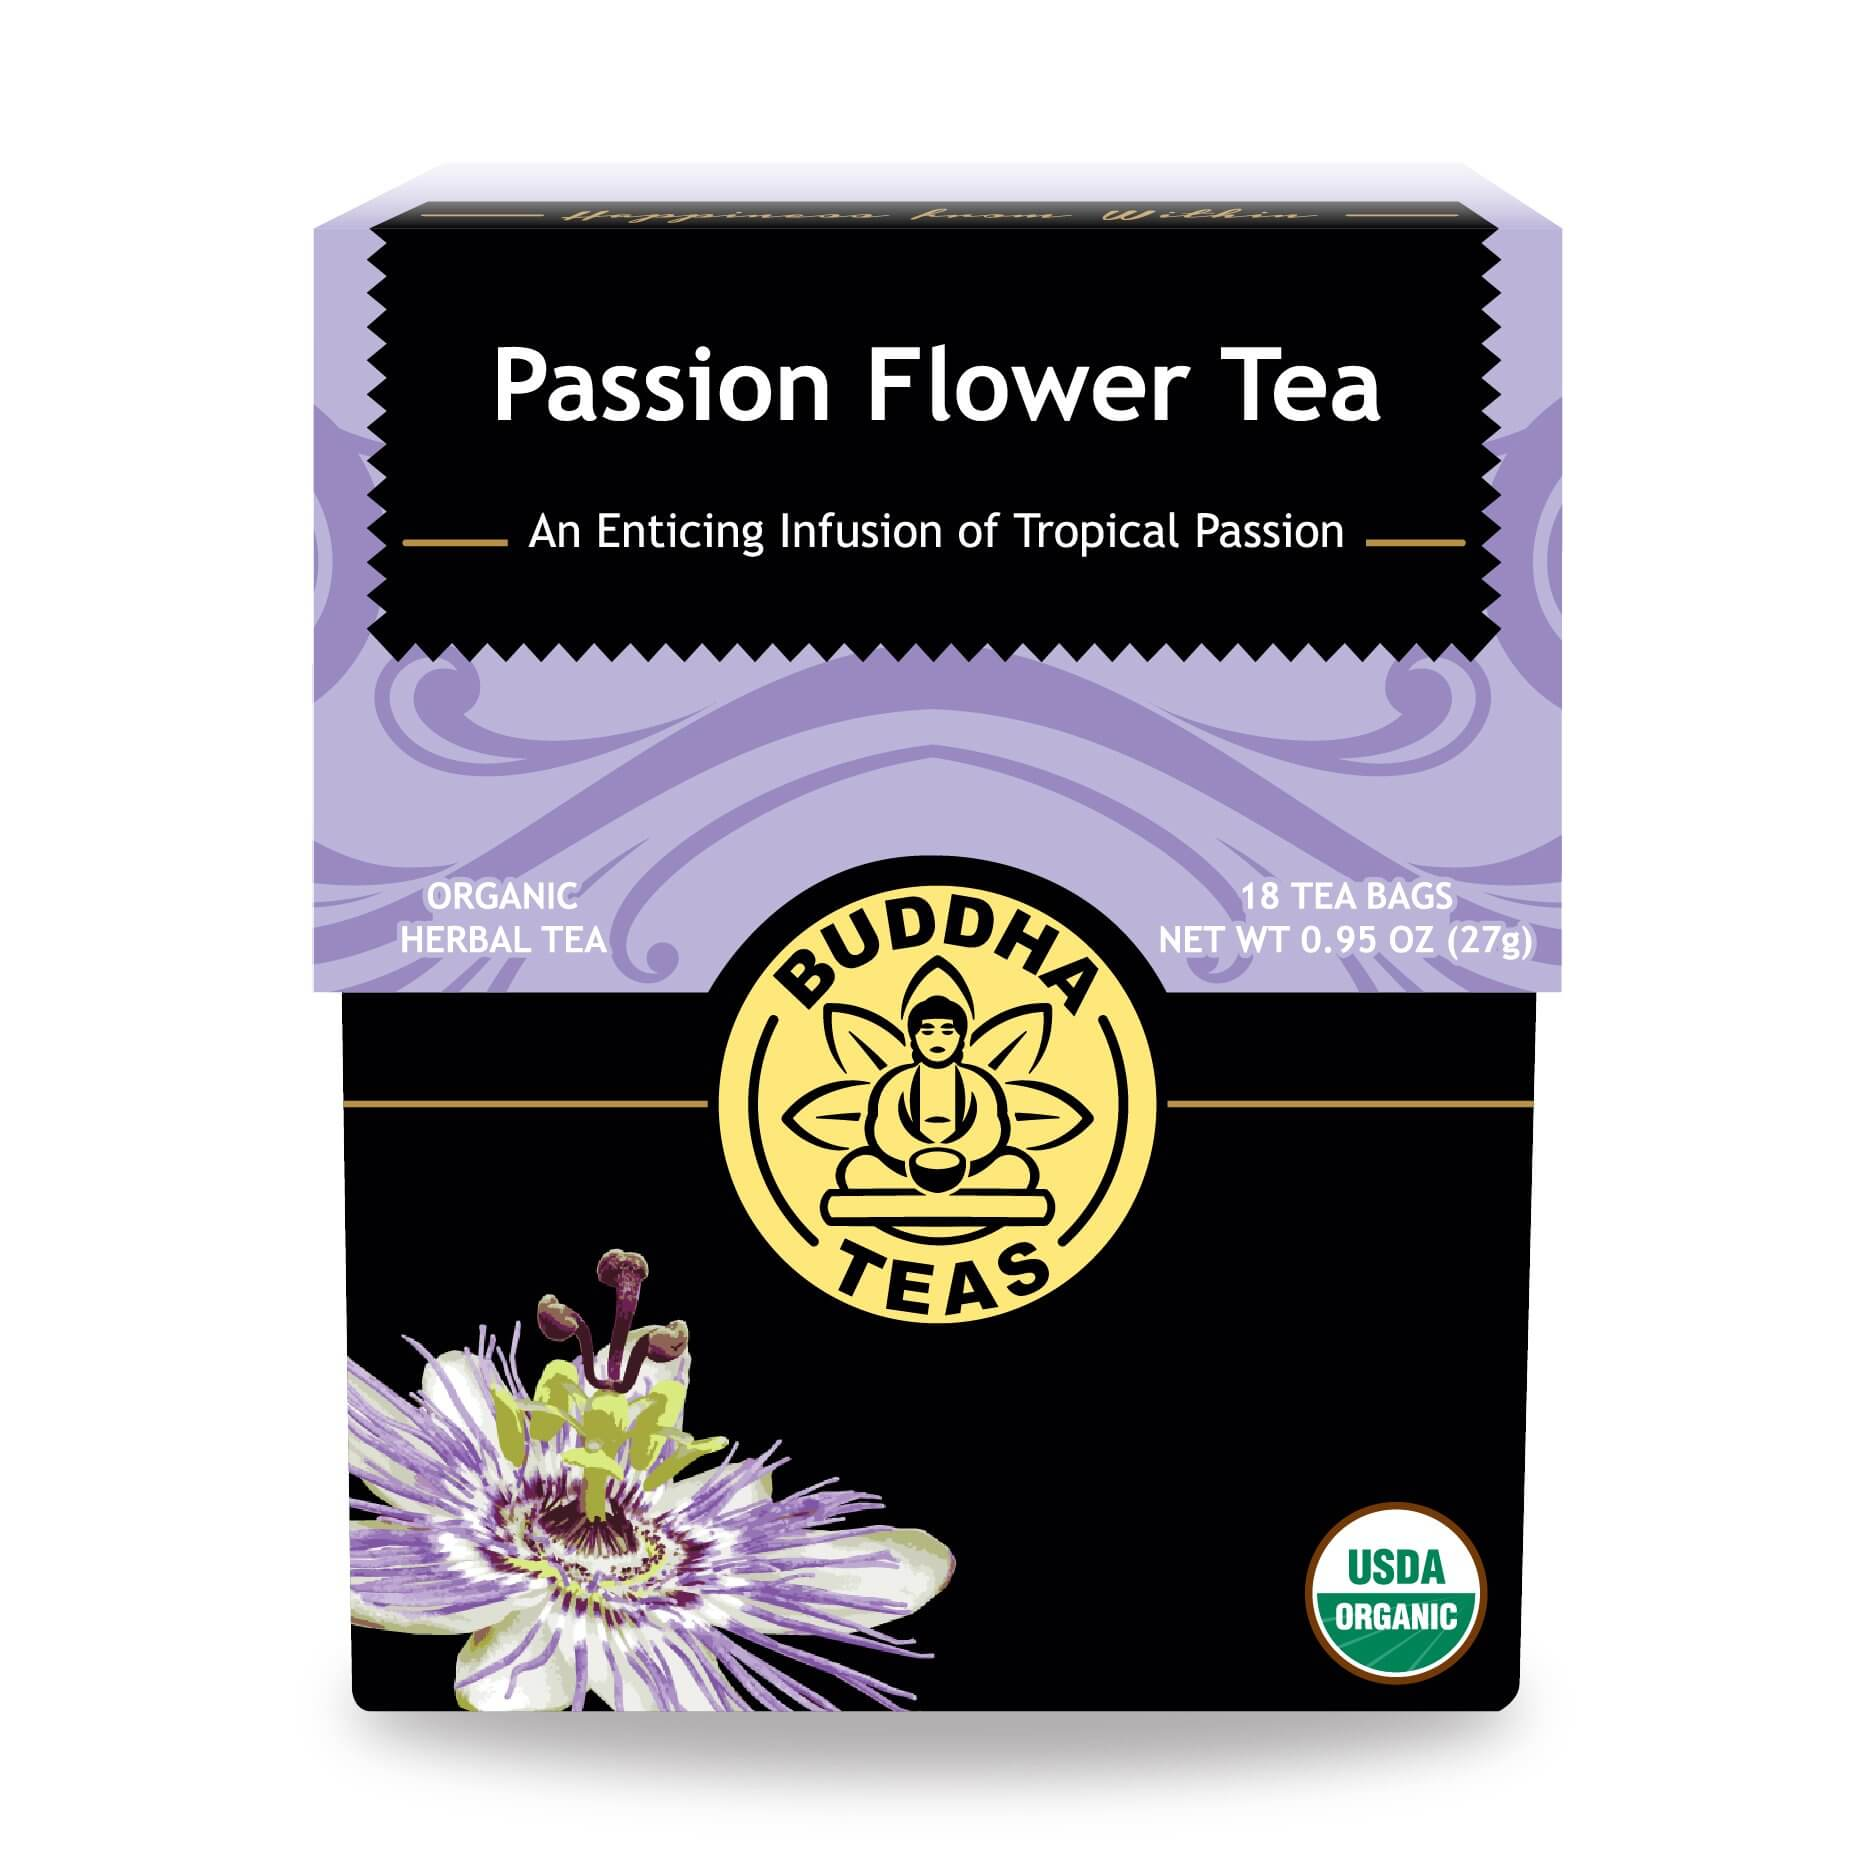 Buy Passion Flower Tea Bags Enjoy Health Benefits of Organic Teas